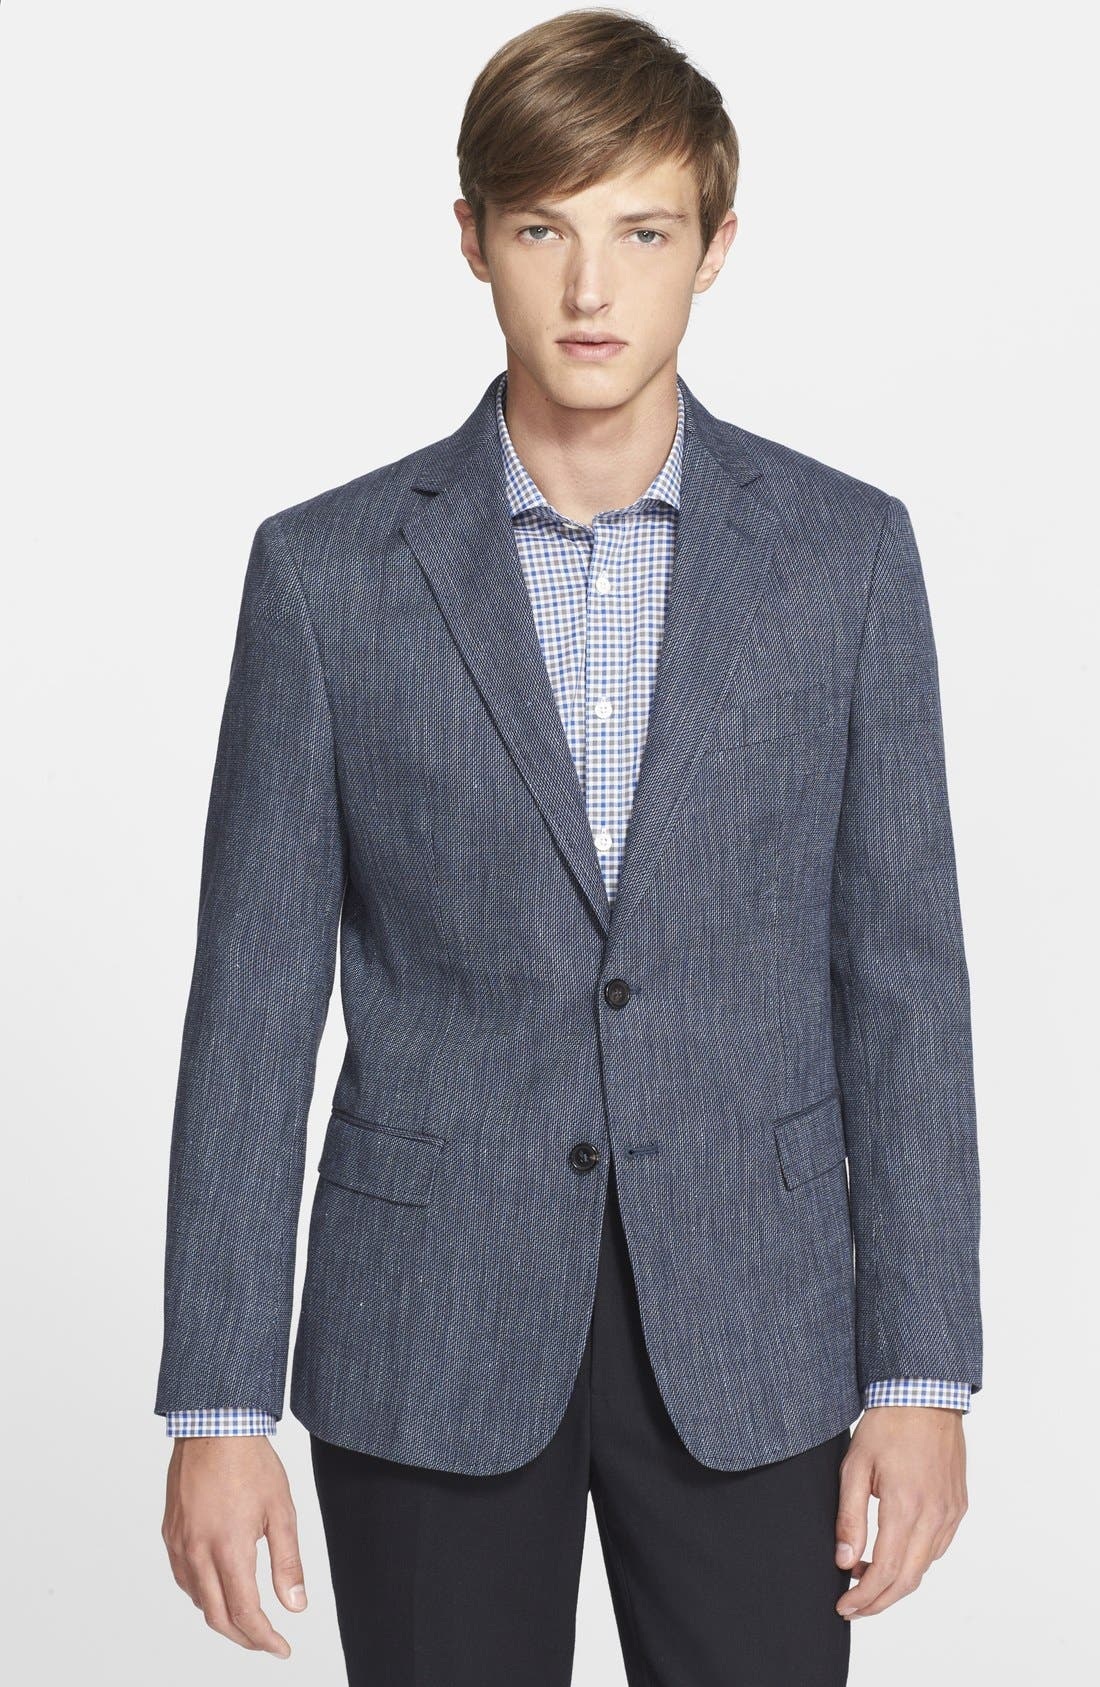 BILLY REID 'Lexington' Trim Fit Cotton, Linen & Silk Sport Coat, Main, color, 462